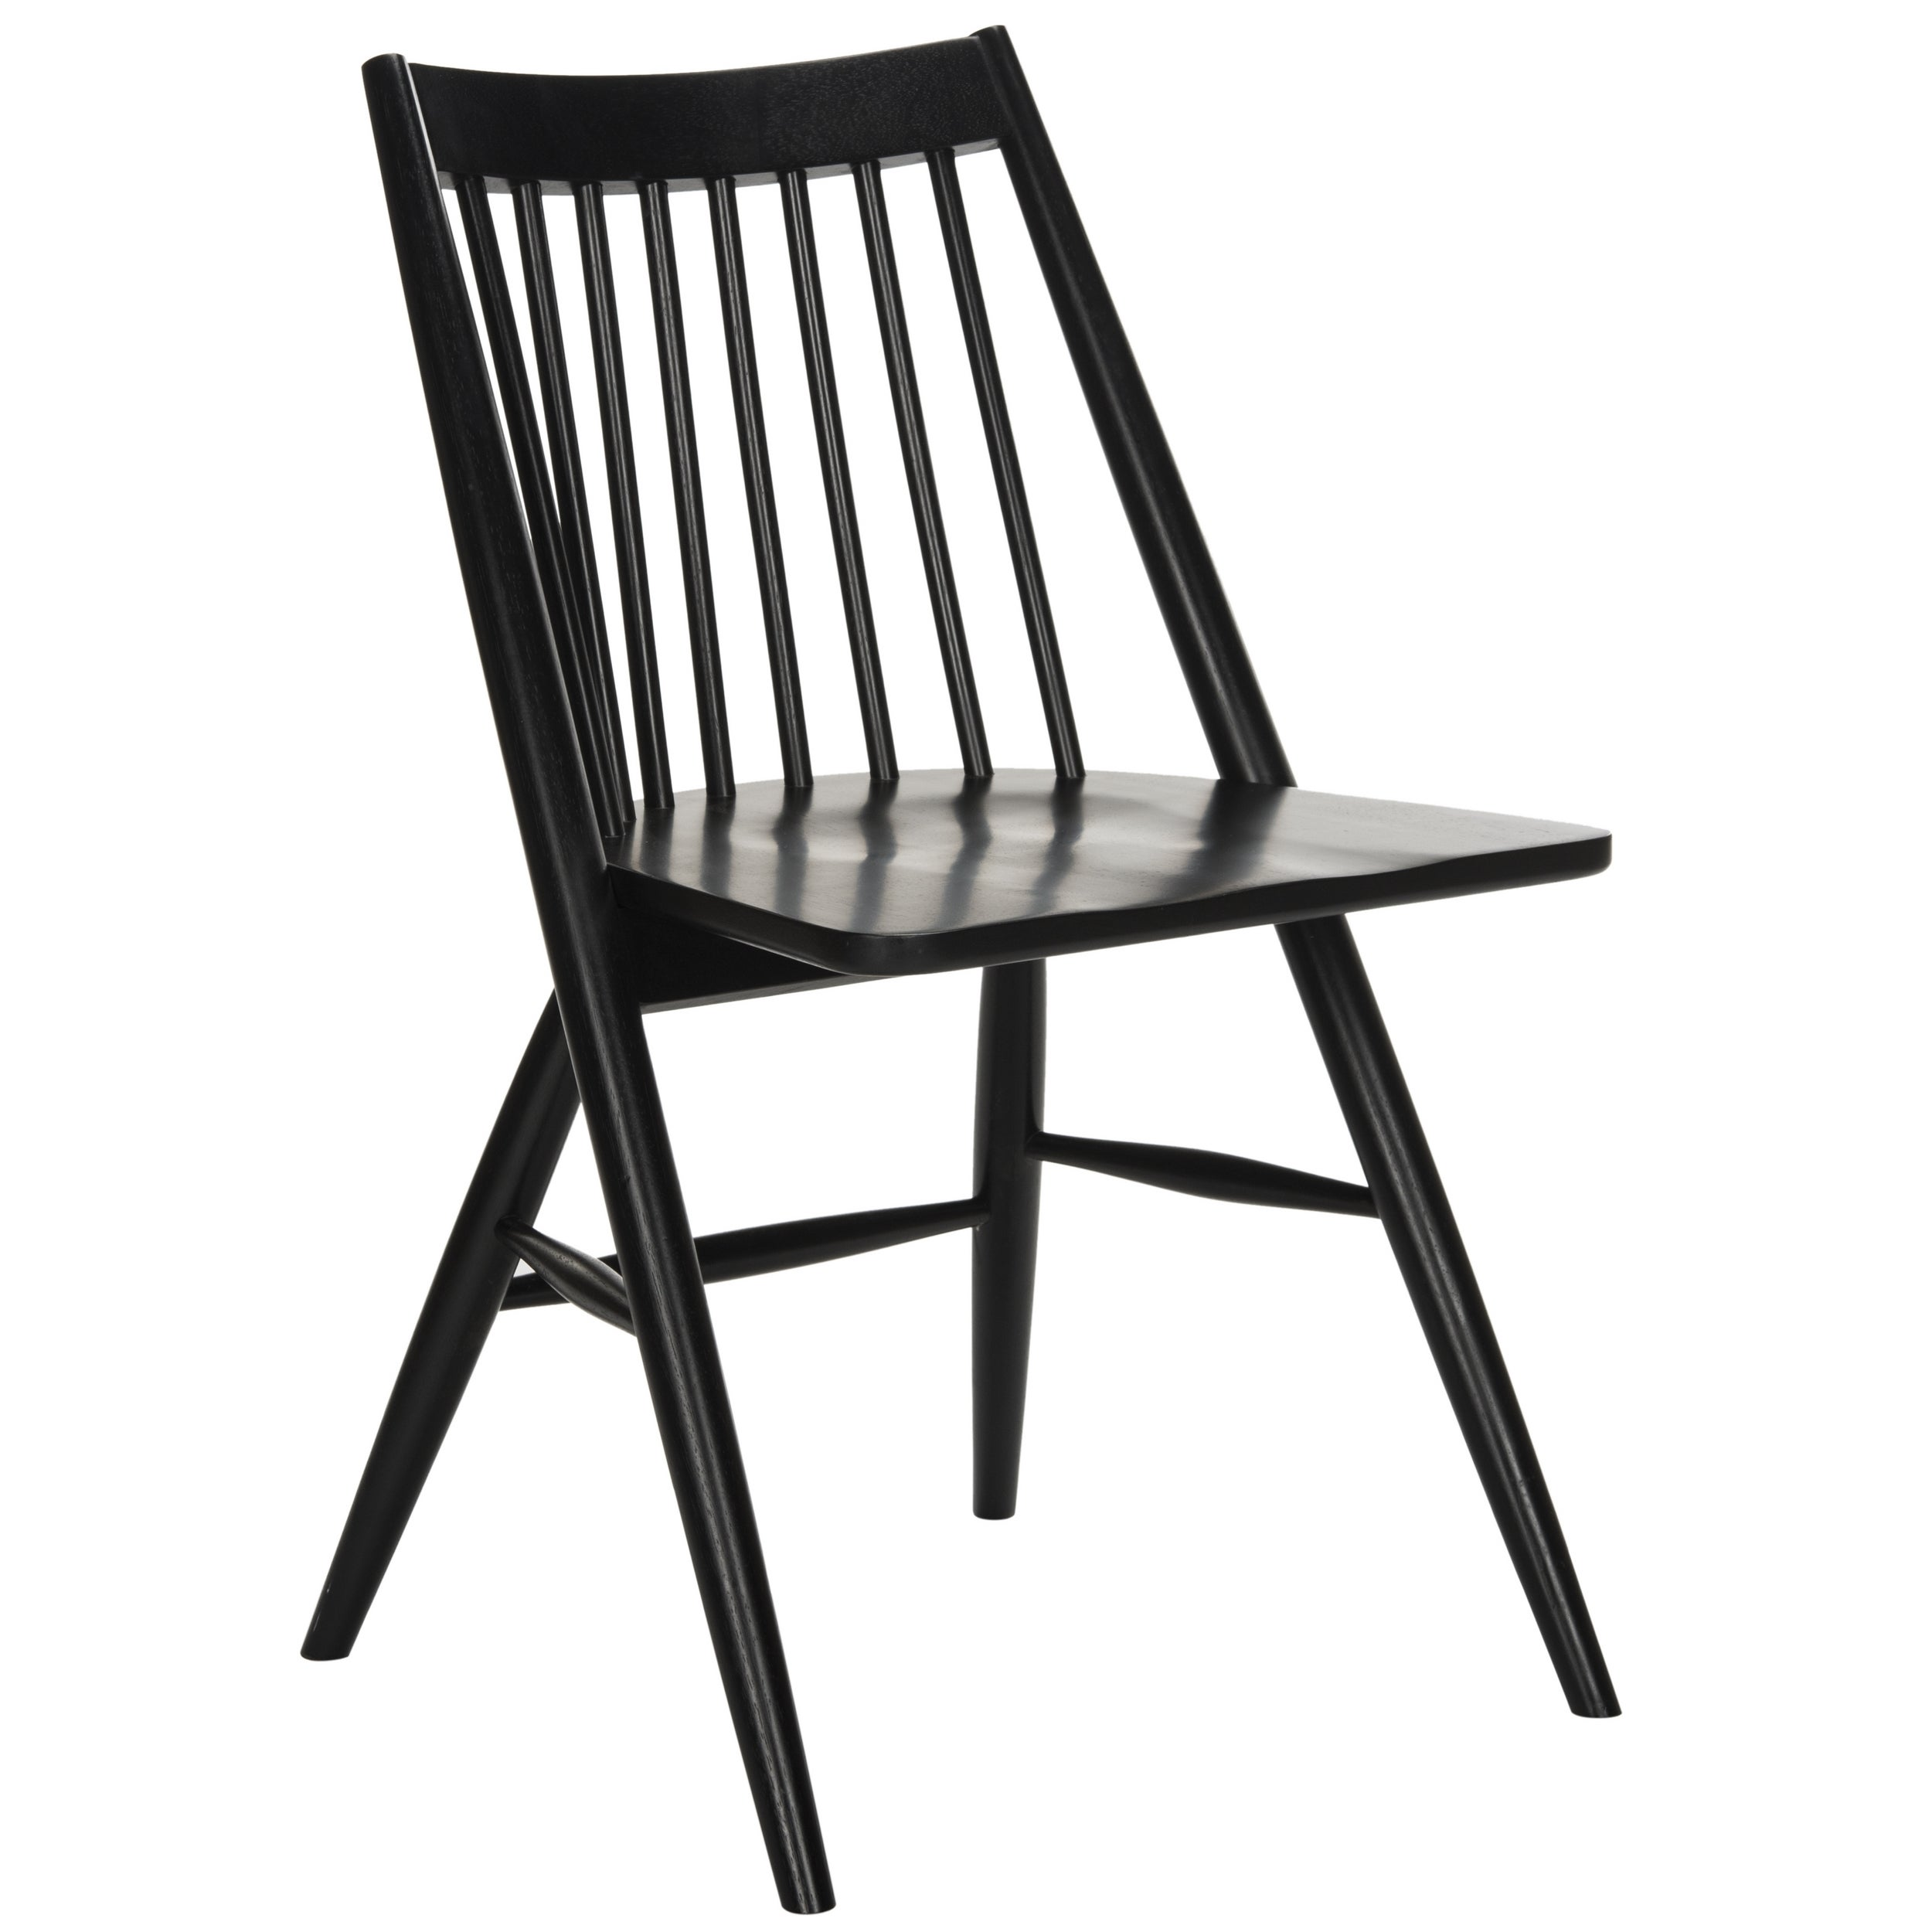 Safavieh Wren 19 H Black Spindle Dining Chair Set Of 2 On Free Shipping Today 14429706